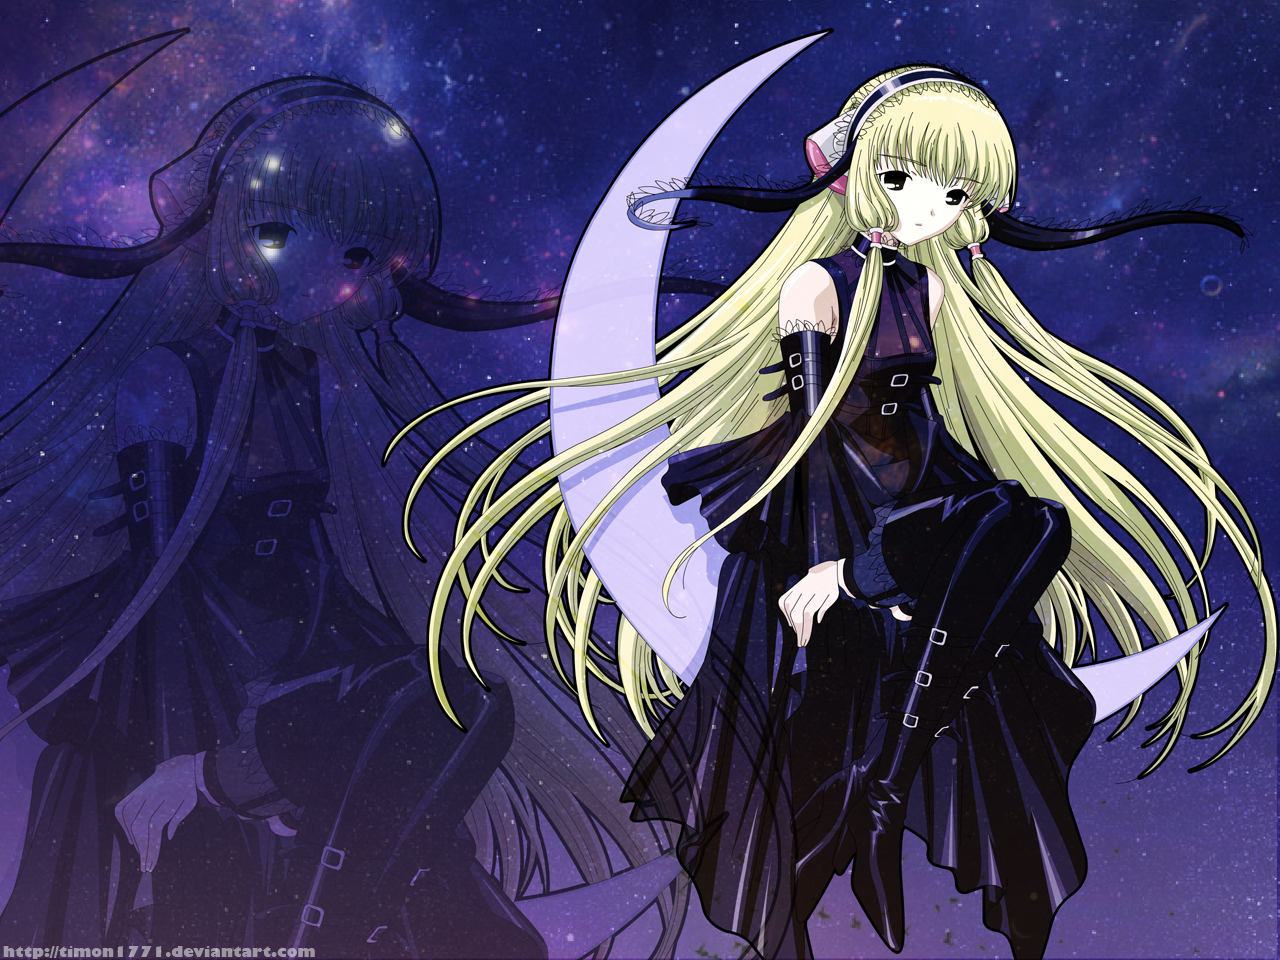 Chobits Chii And Freya 11 Free Hd Wallpaper